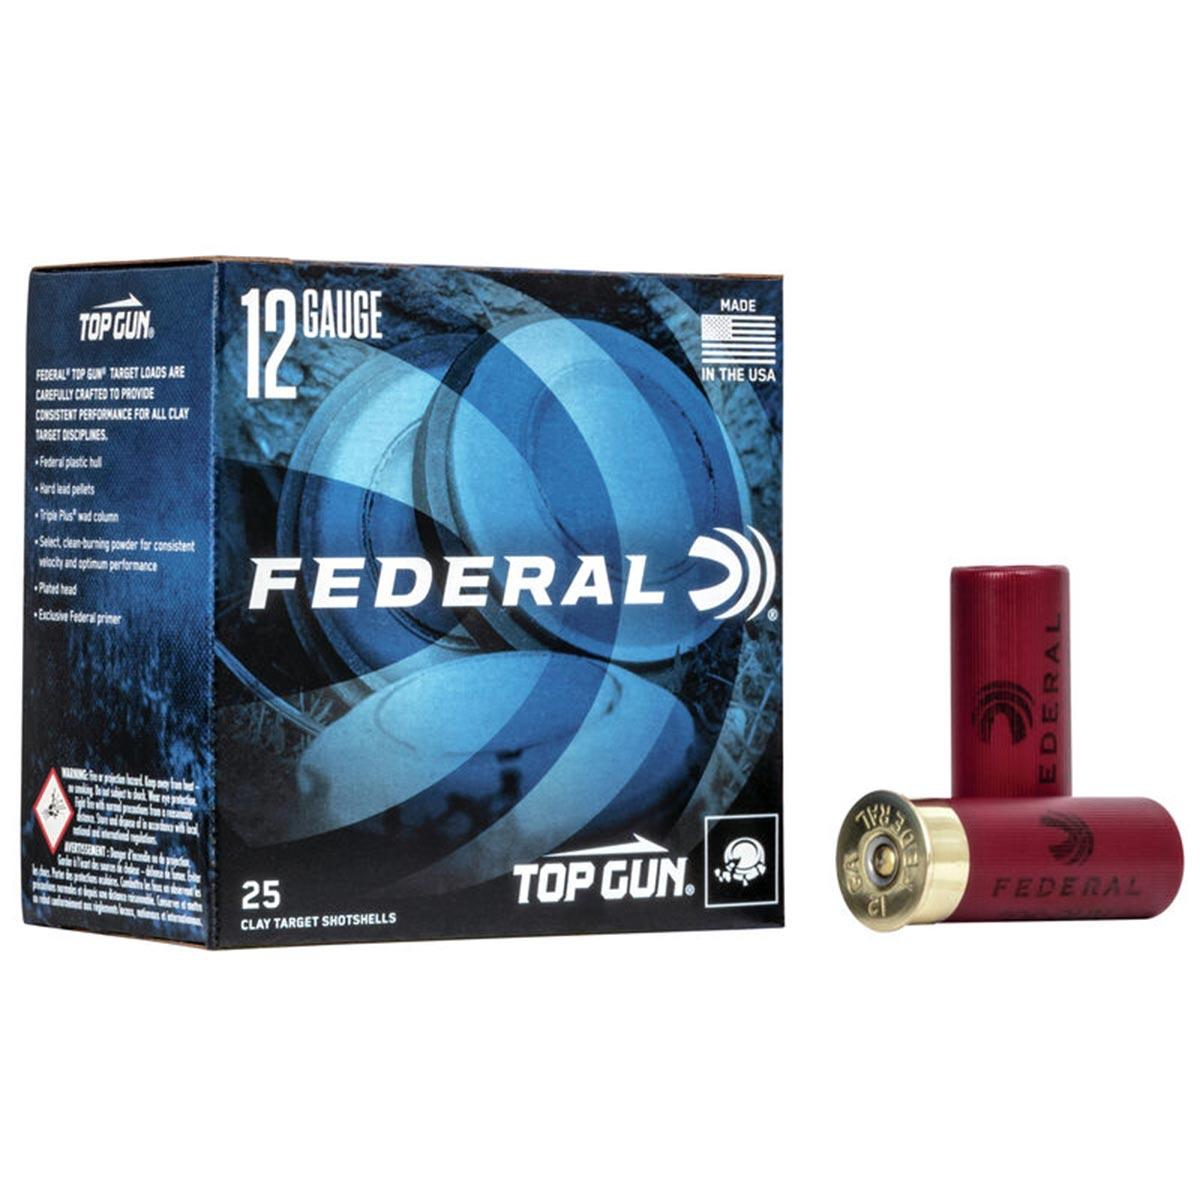 "Federal Lead Top Gun Lites, 12 Gauge 2 3/4 ""_1.jpg"